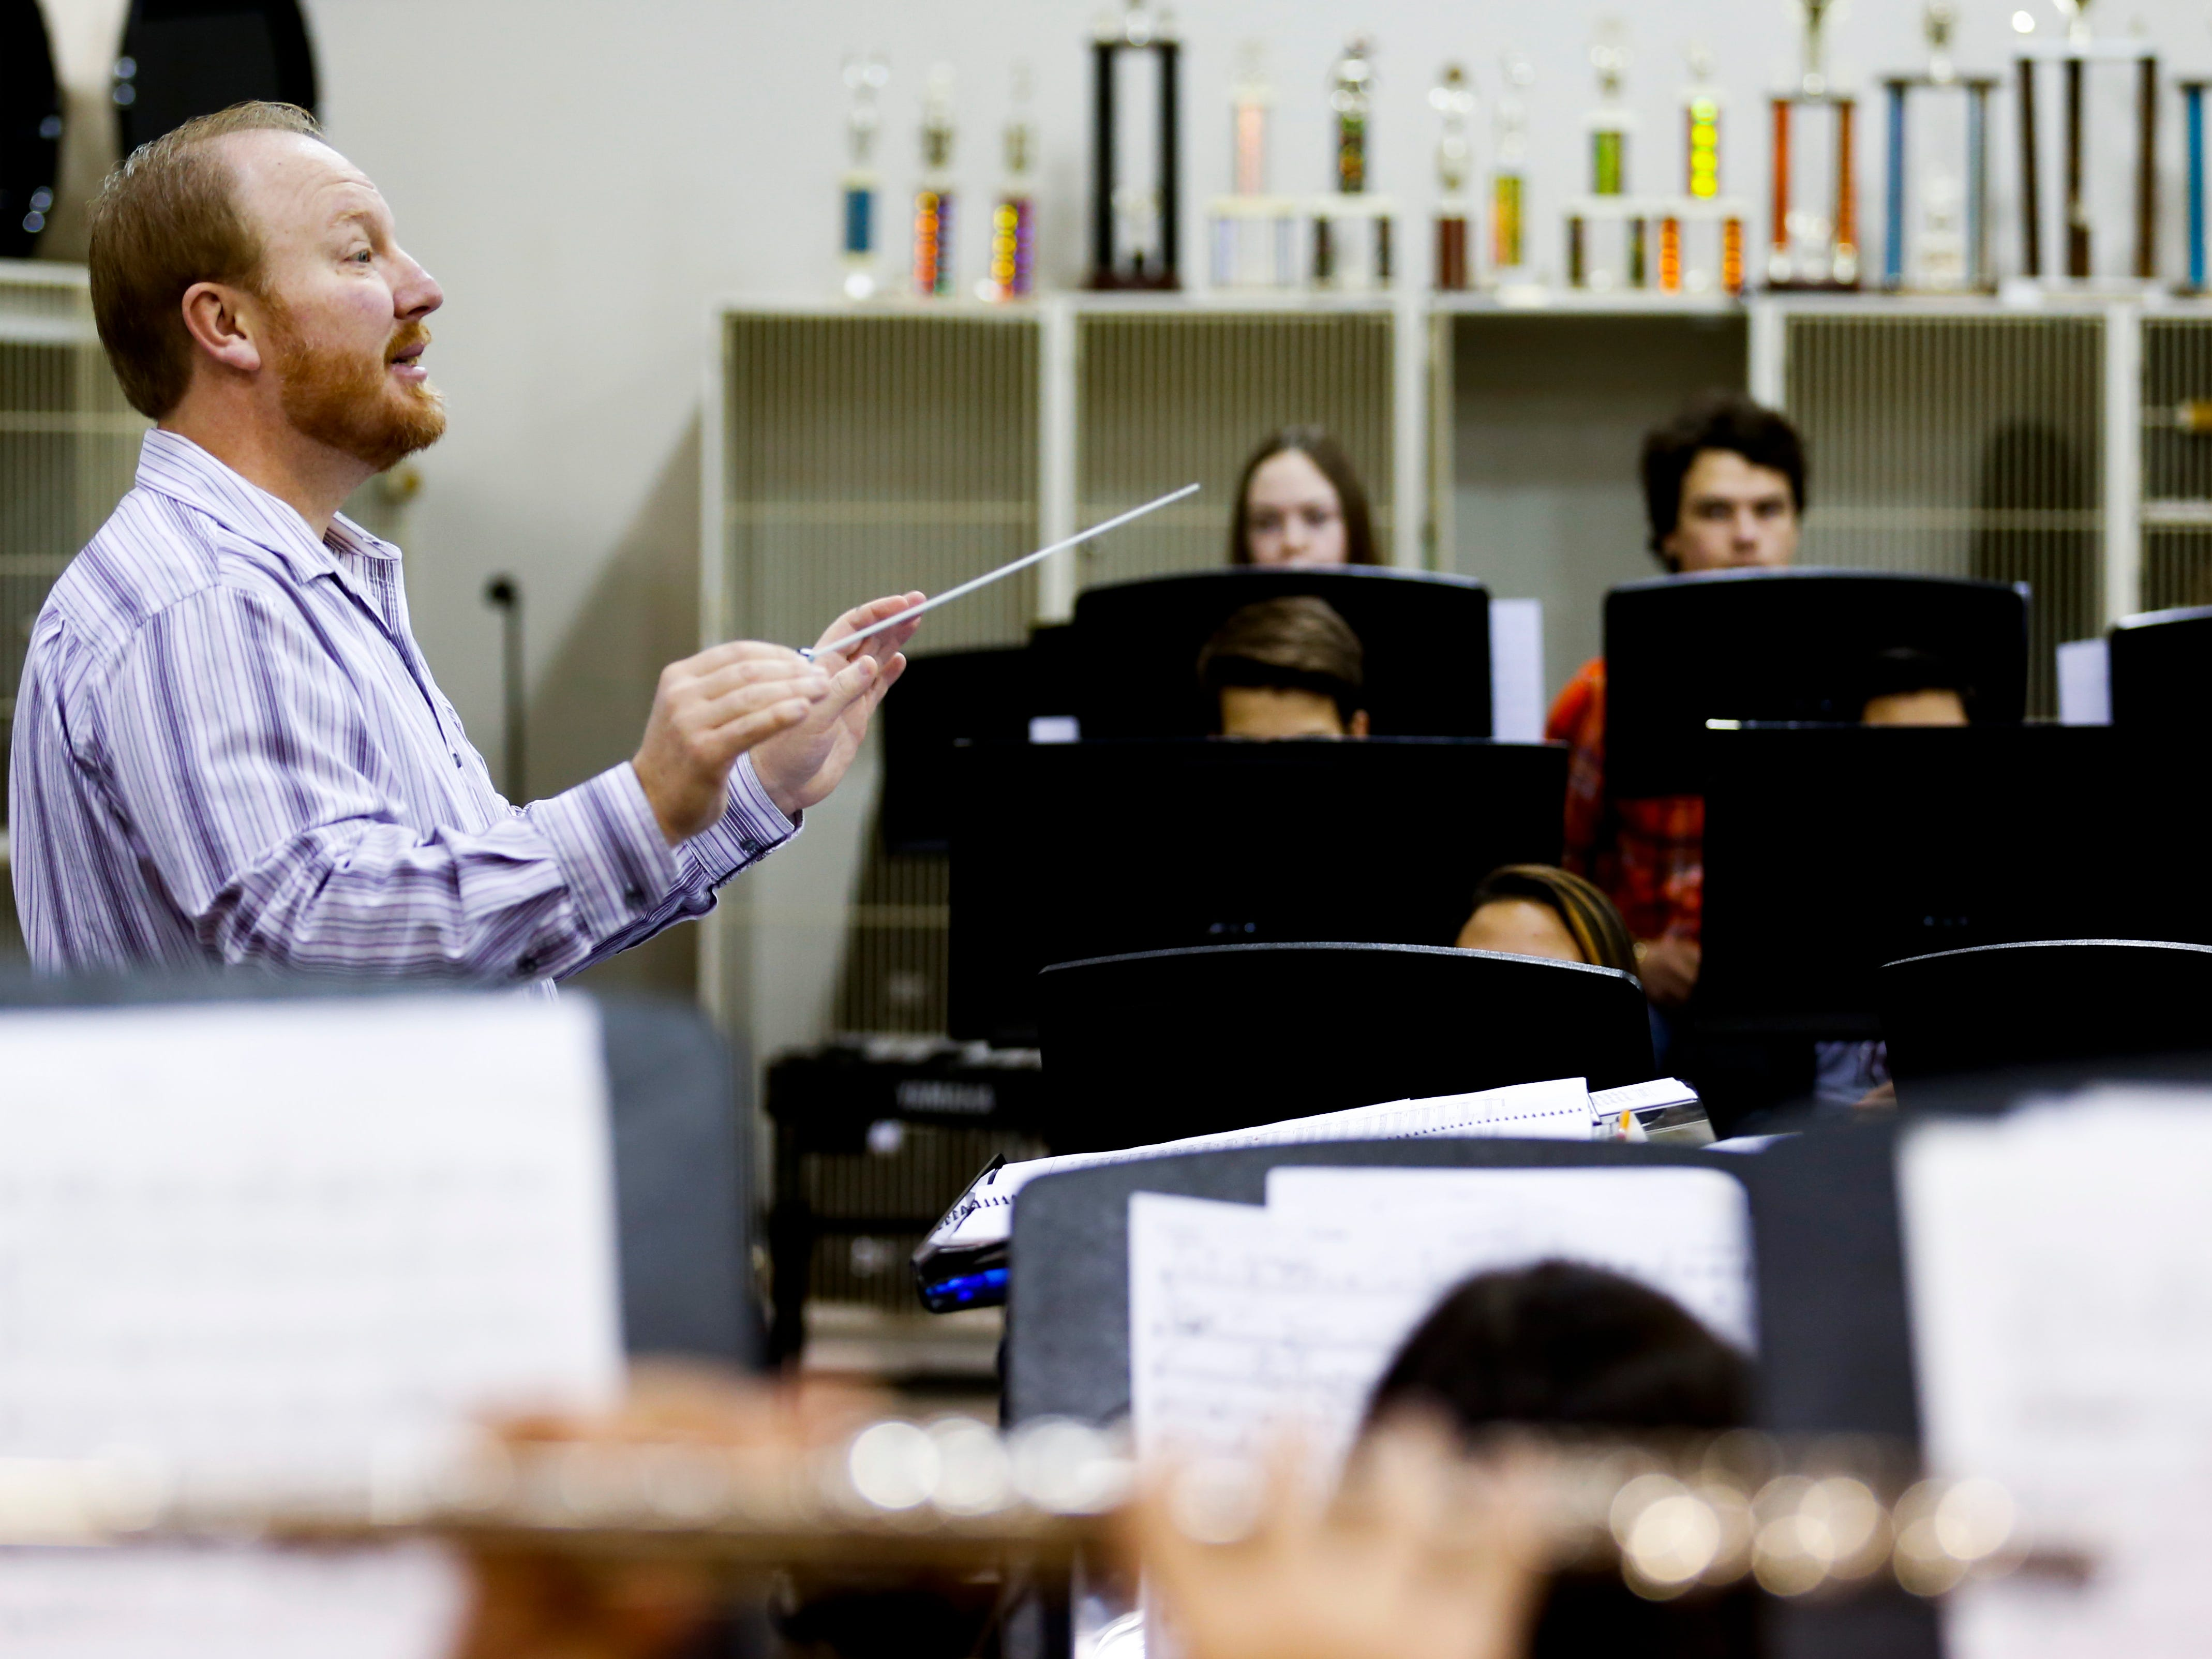 Central High School band director Chris Rohrbaugh leads the wind ensemble during class on Wednesday, Jan. 16, 2018. The 53-student wind ensemble will be featured at the annual state conference of the Missouri Music Educators Association next week.